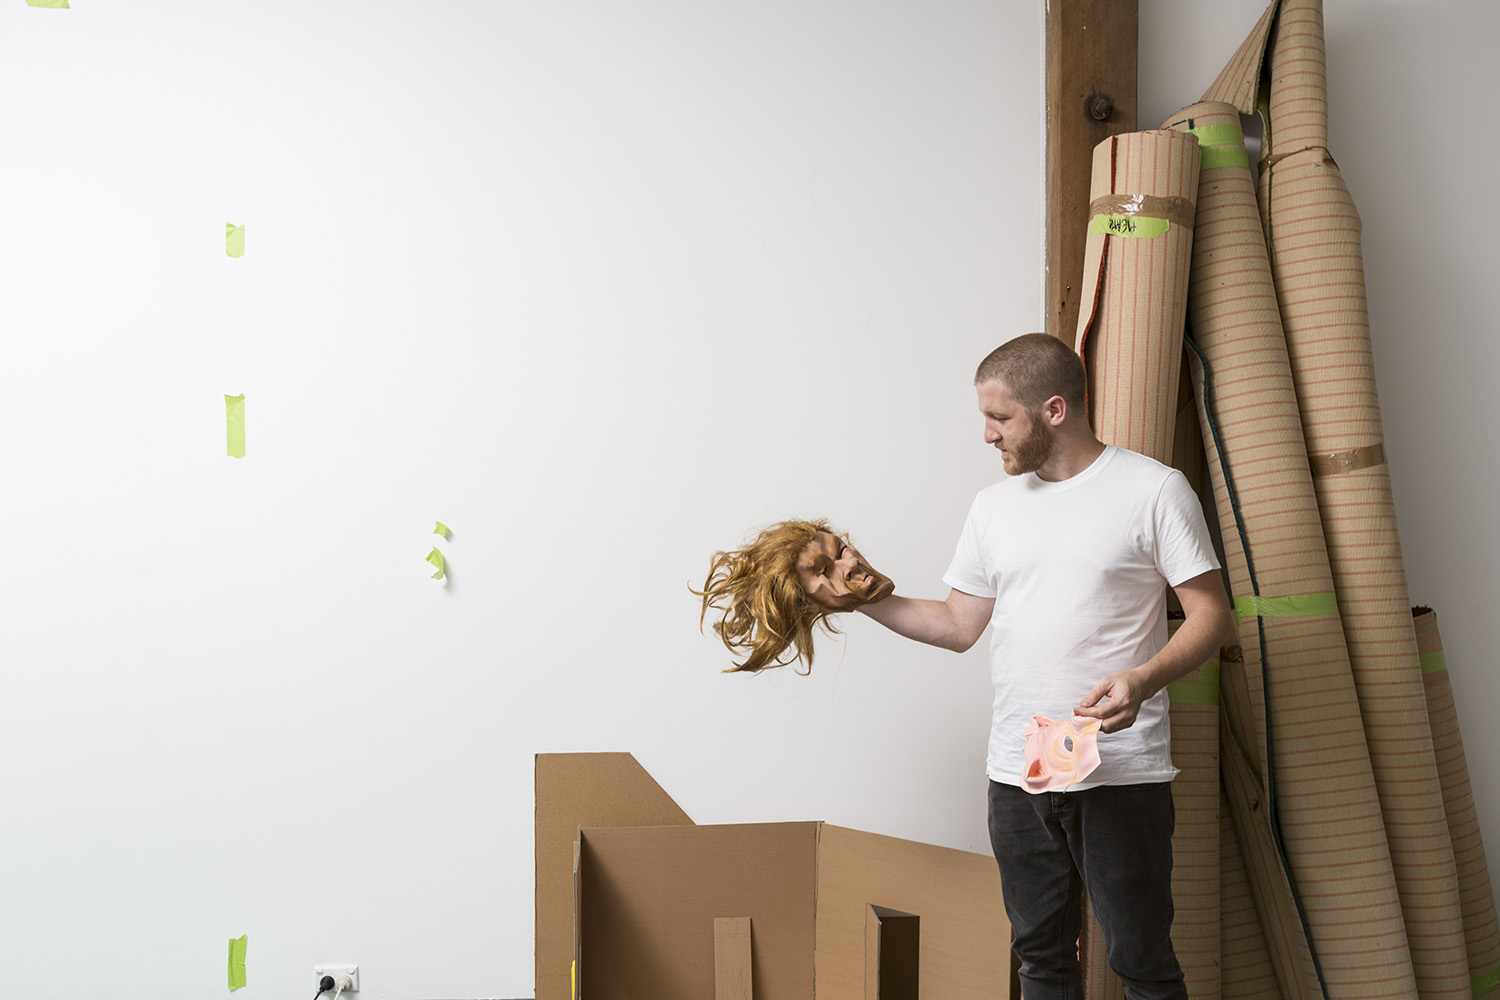 Heath Franco in his Artspace Studio, 2018. Photo: Jessica Maurer